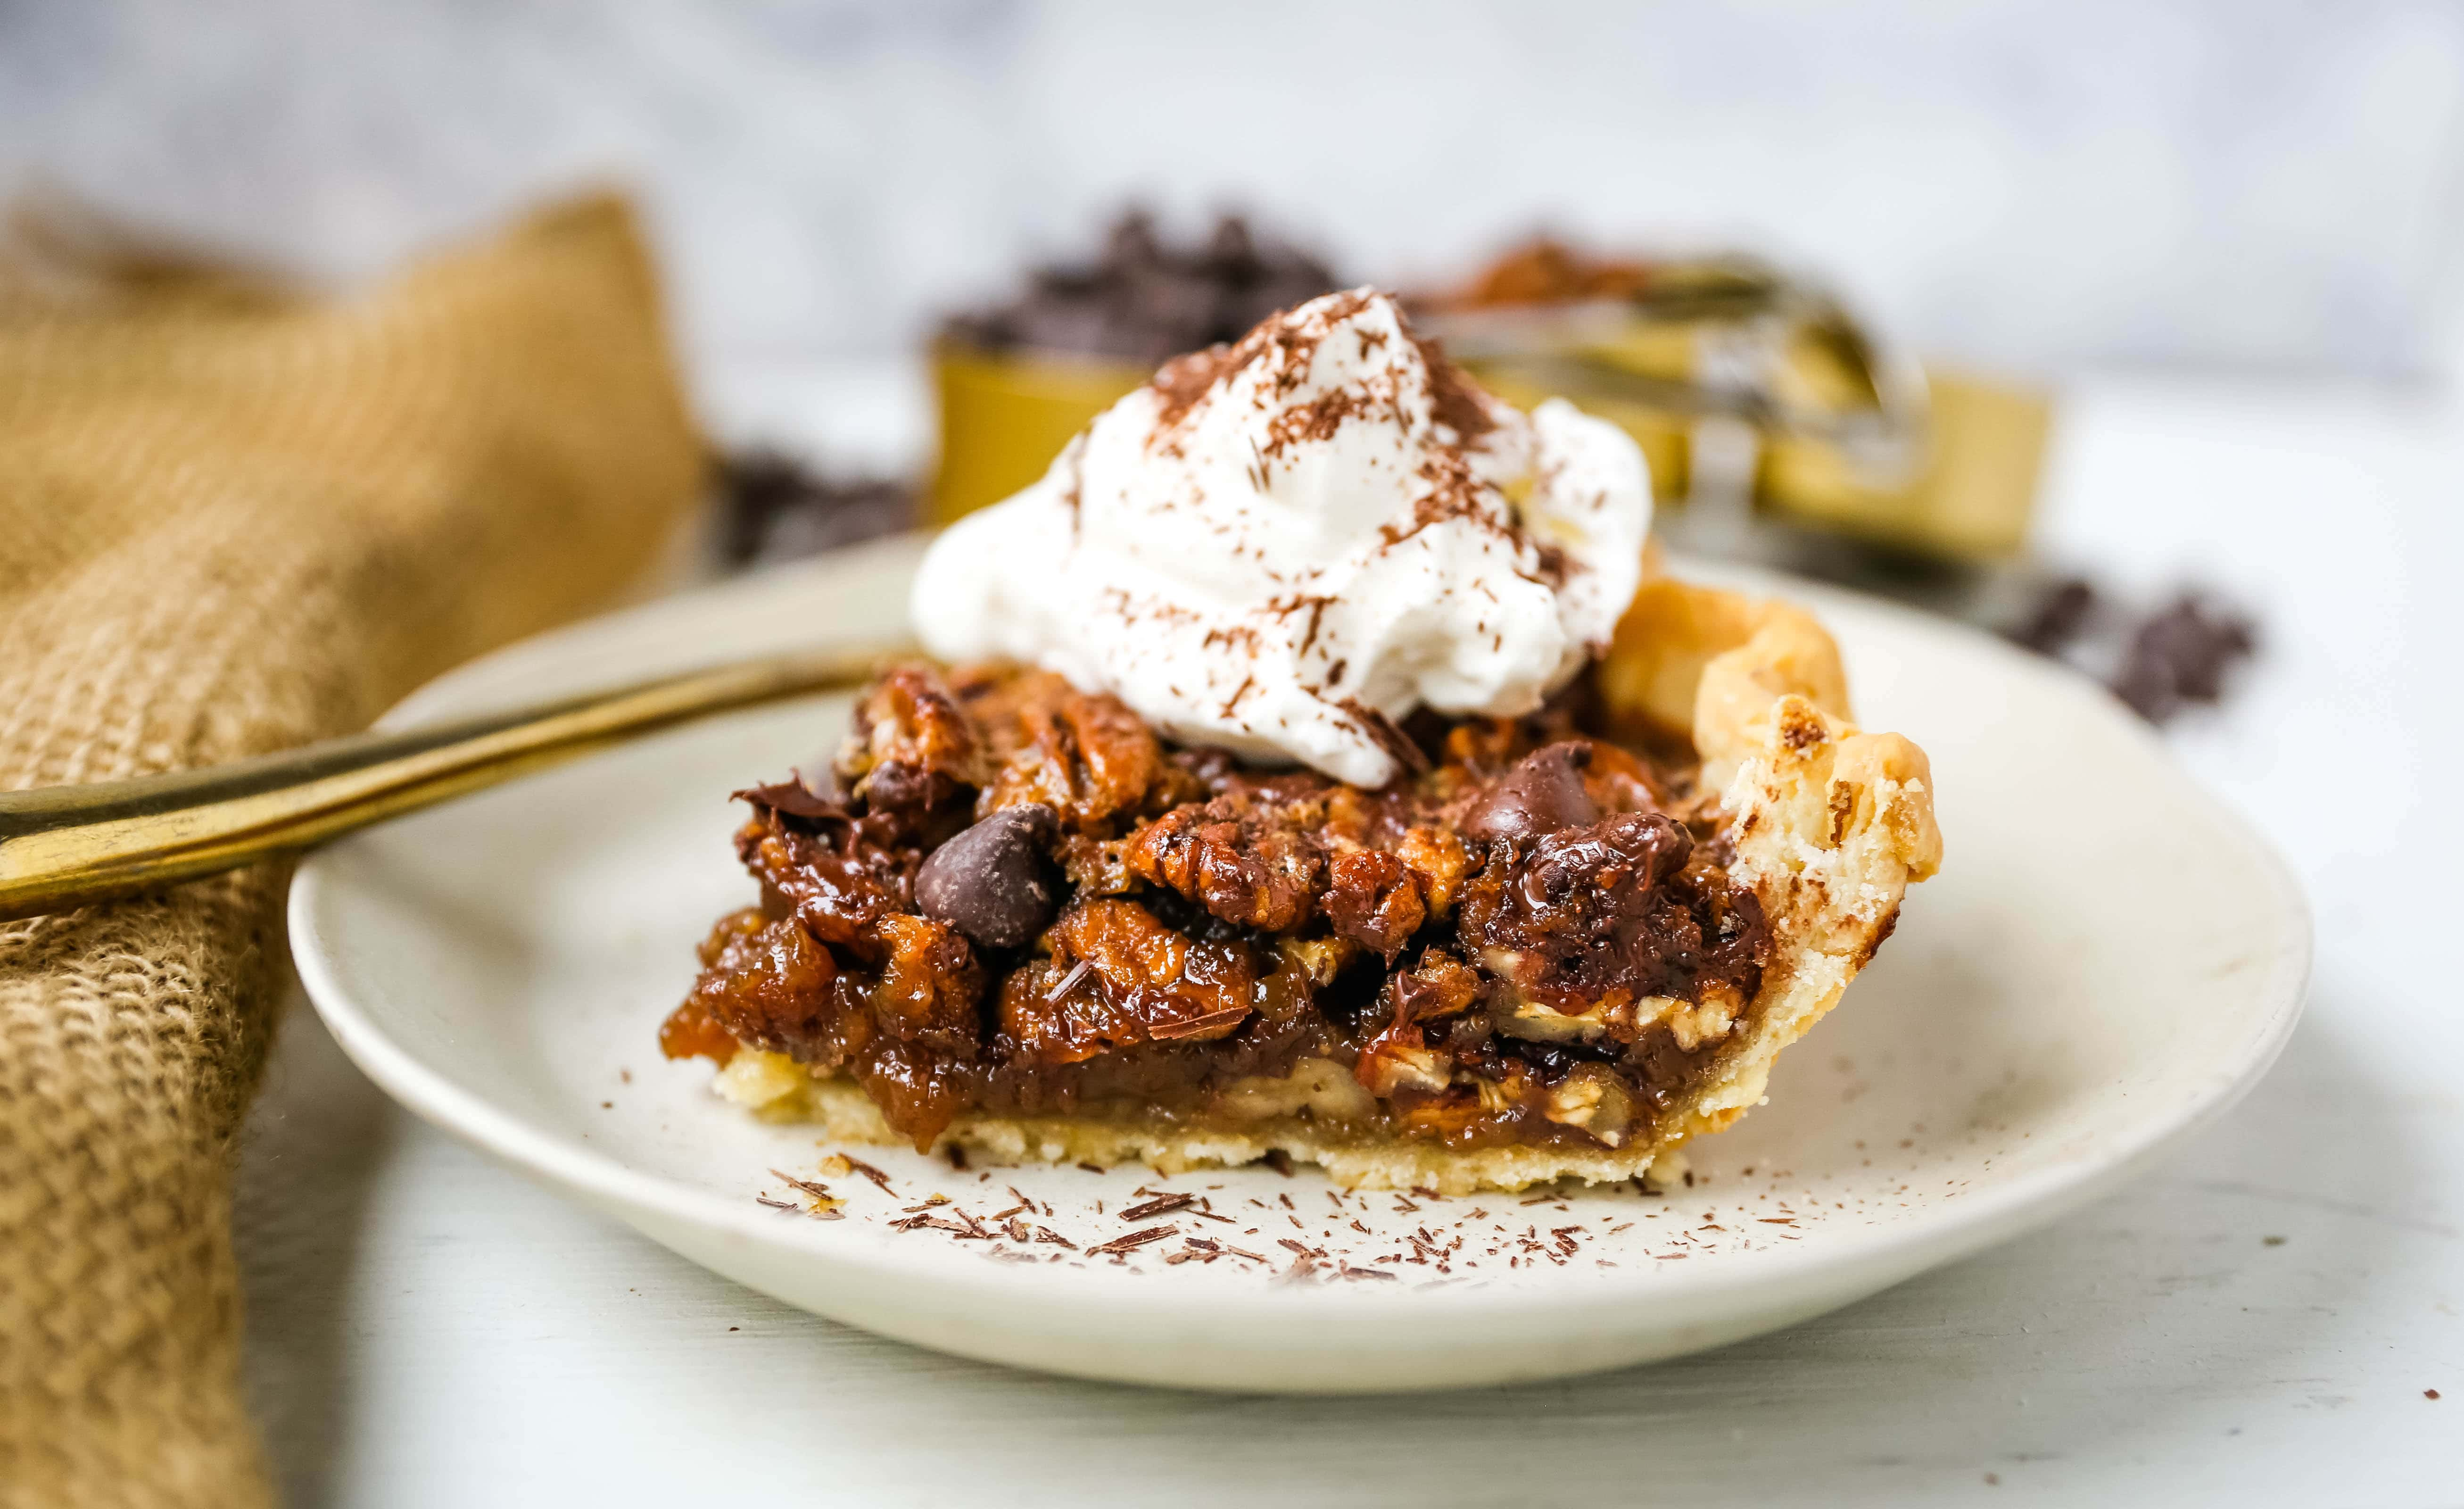 Chocolate Pecan Pie Rich chocolate pecan pie made with a brown sugar filling, crunchy pecans, rich chocolate, all in a homemade buttery, flaky pie crust. www.modernhoney.com #pie #pecanpie #chocolatepecanpie #thanksgiving #pies